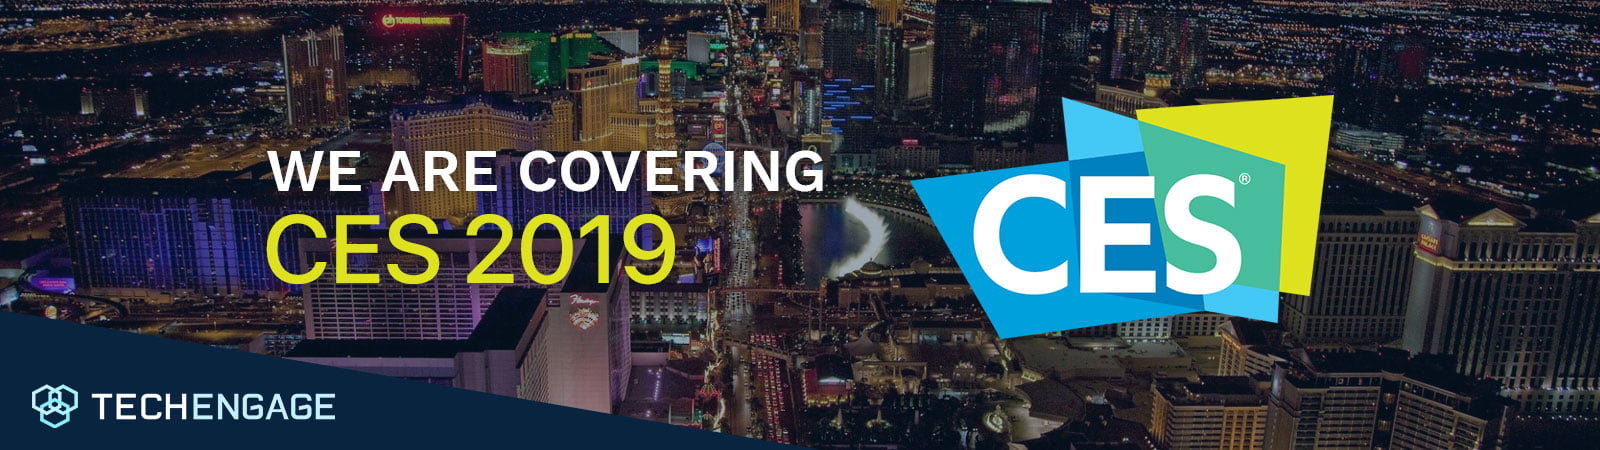 Consumer Electronics Show 2019 by TechEngage